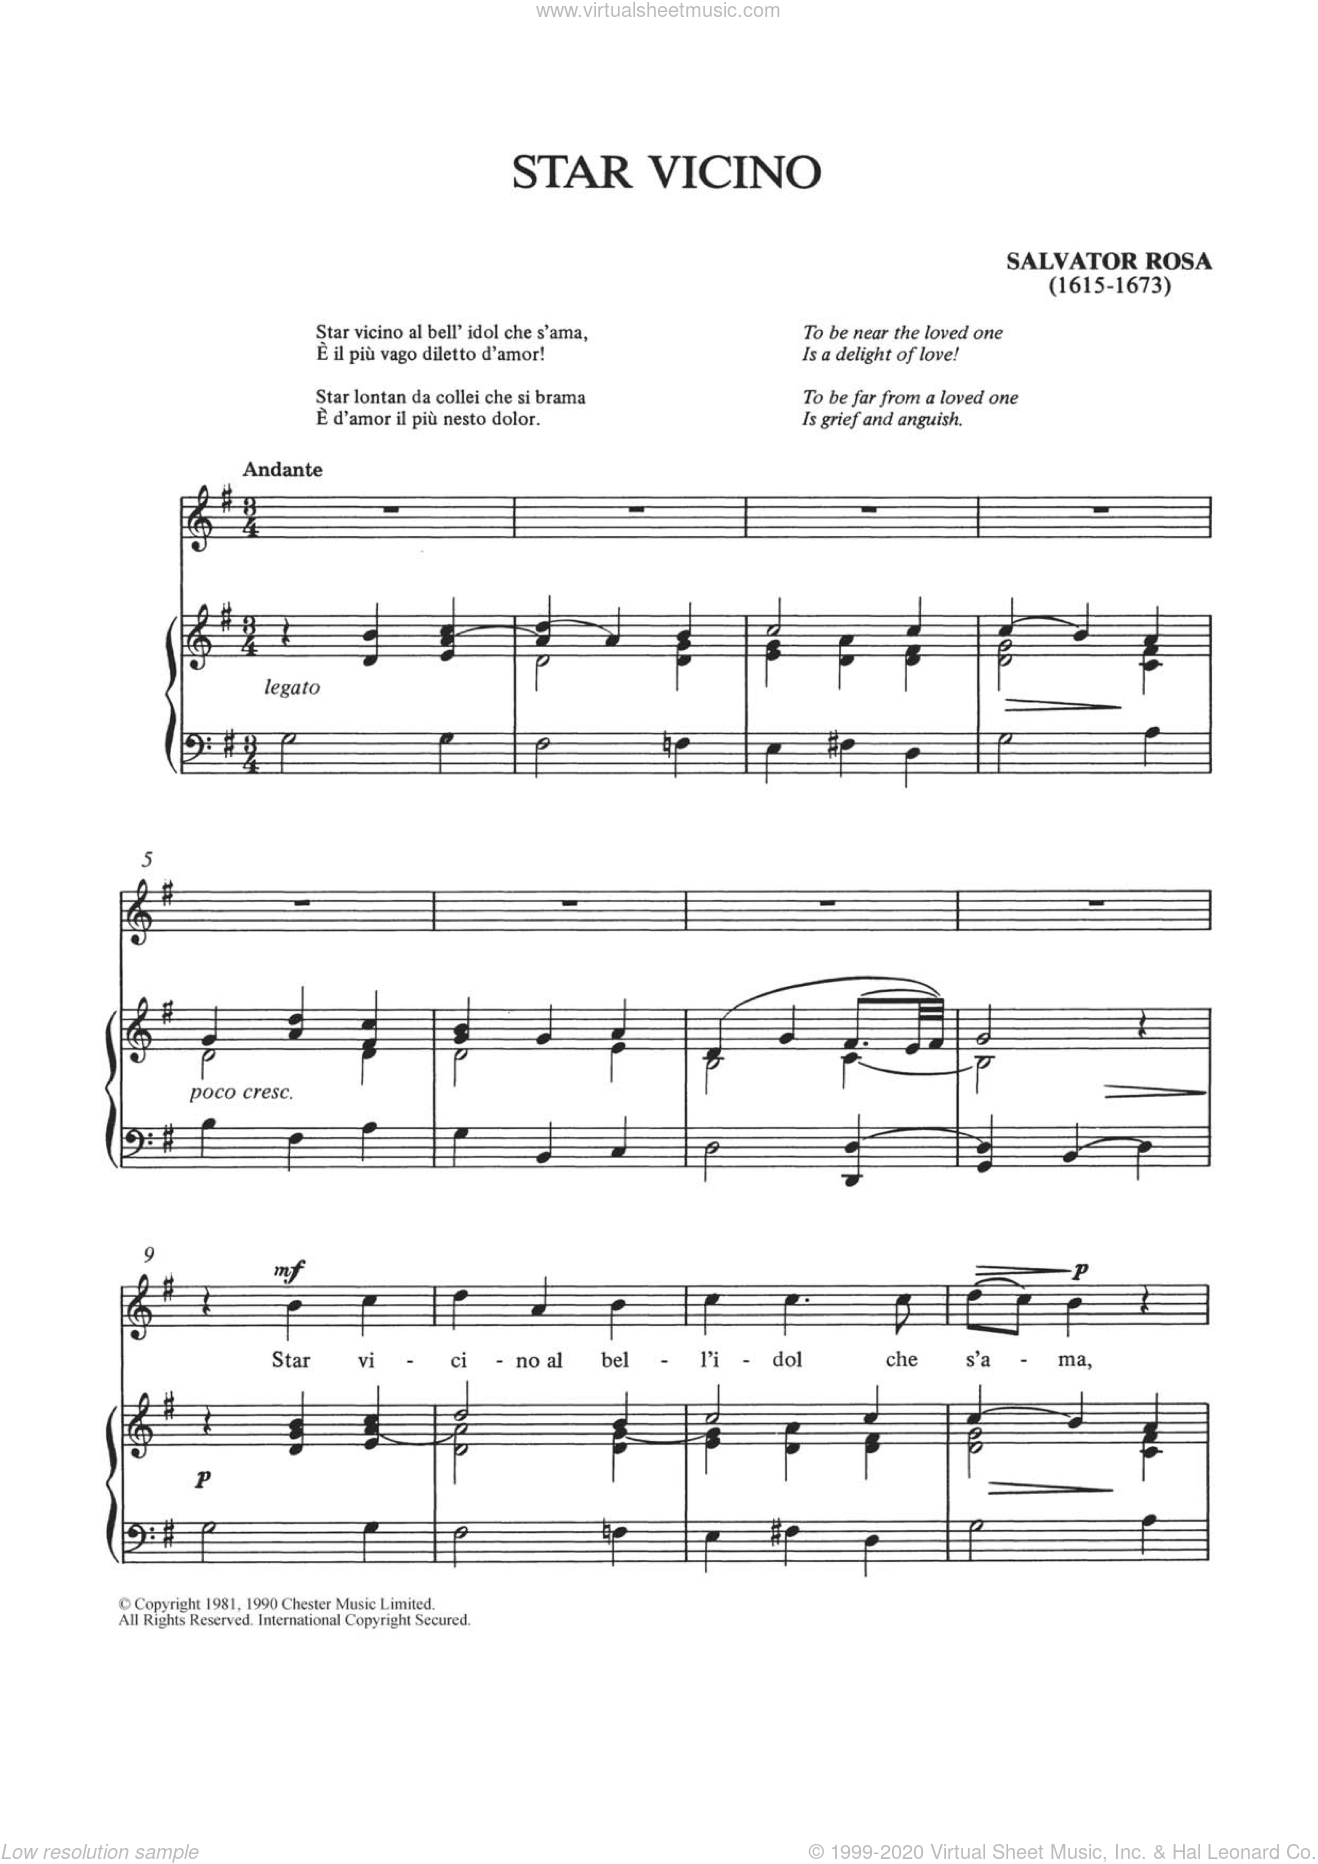 Star Vicino sheet music for voice and piano by Salvator Rosa. Score Image Preview.